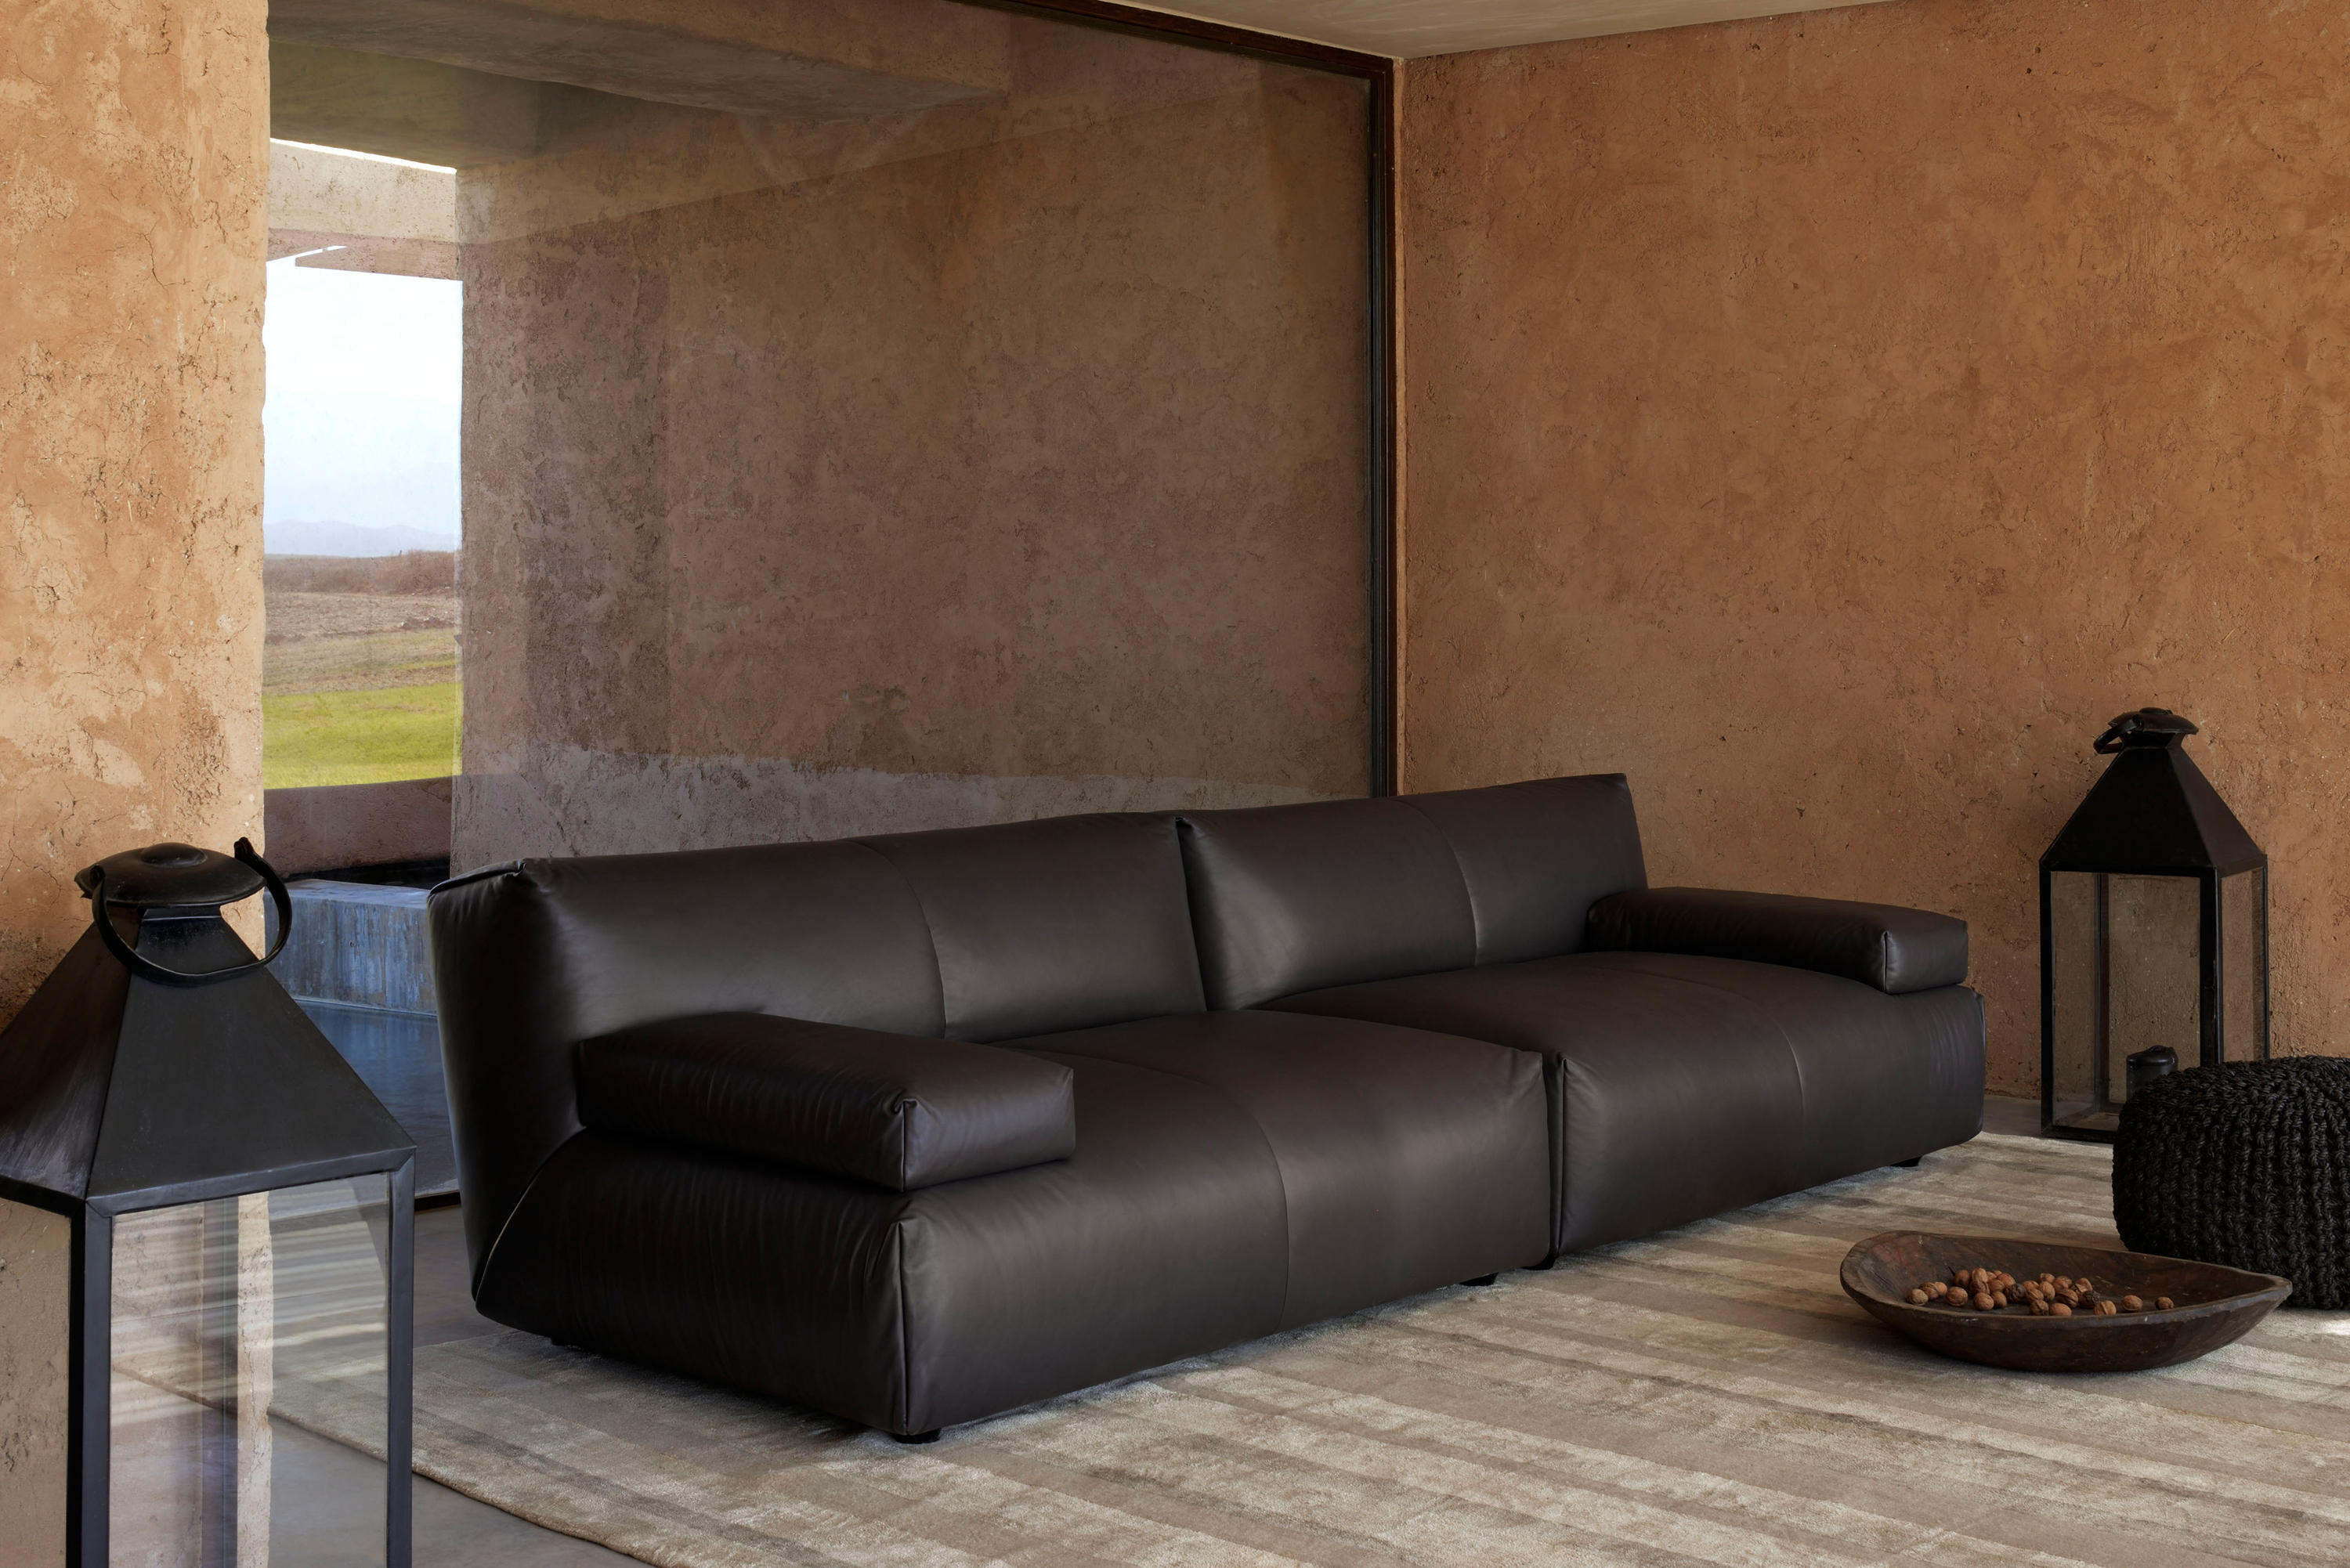 wood frame leather sofas george nelson sofa agadir sectional - from fendi casa | architonic